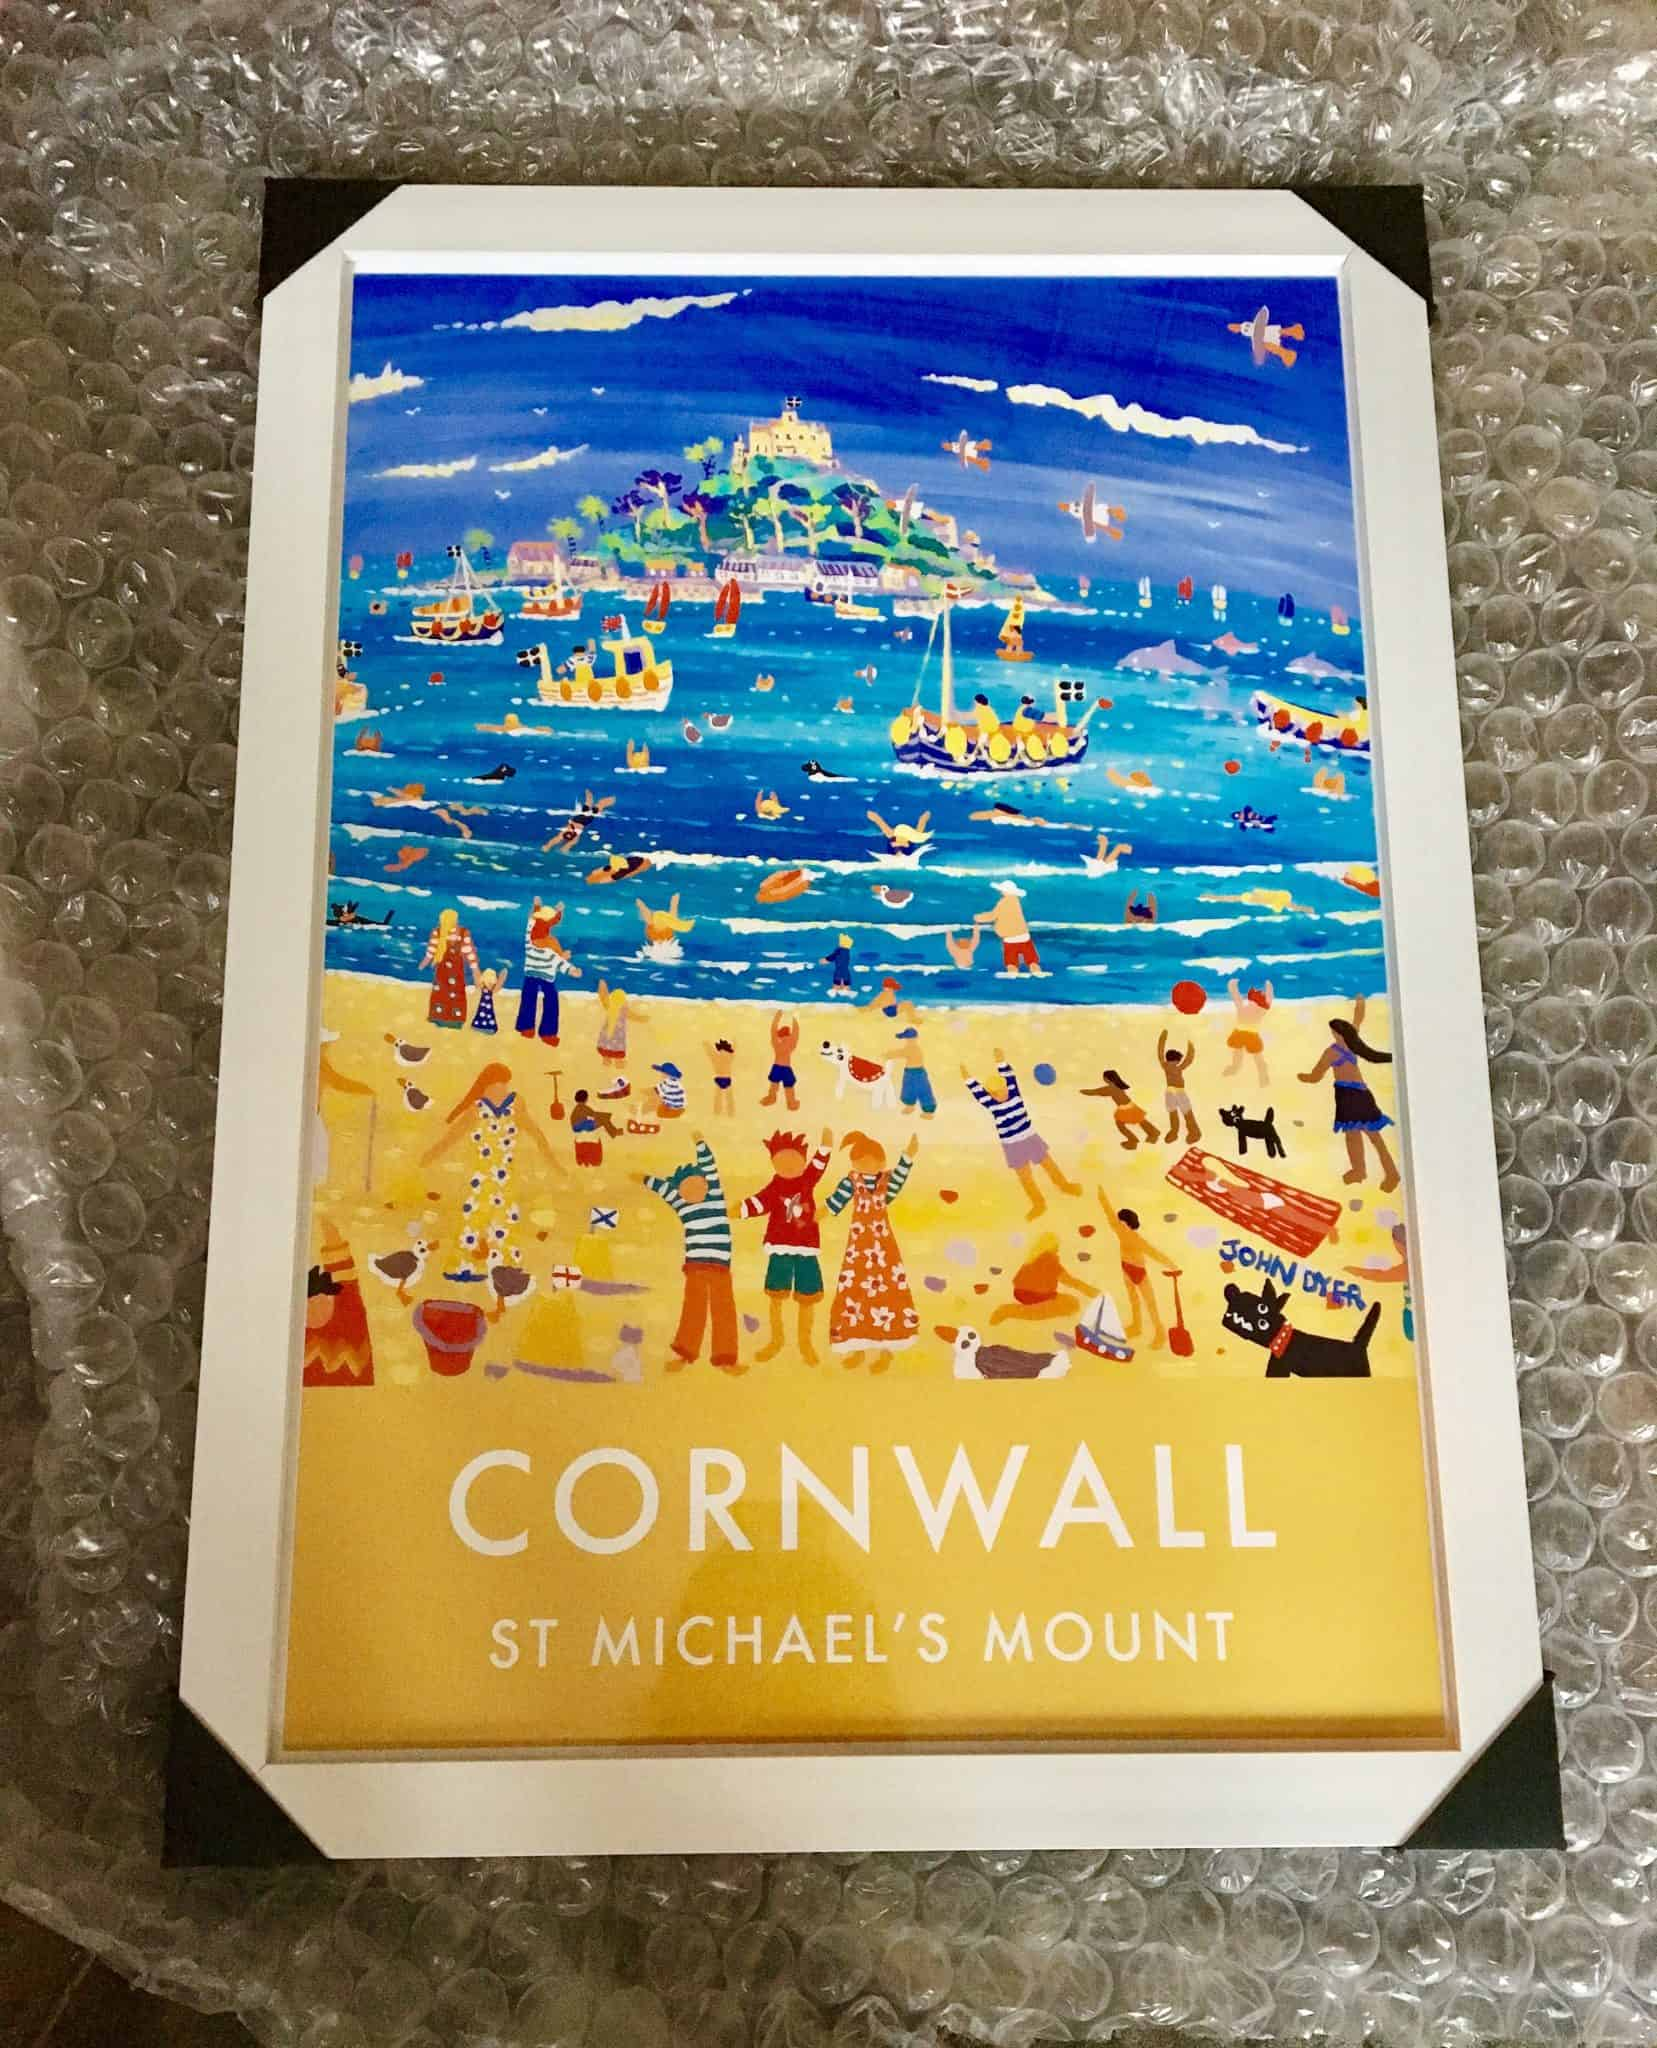 Cornwall art poster - St Michael's Mount